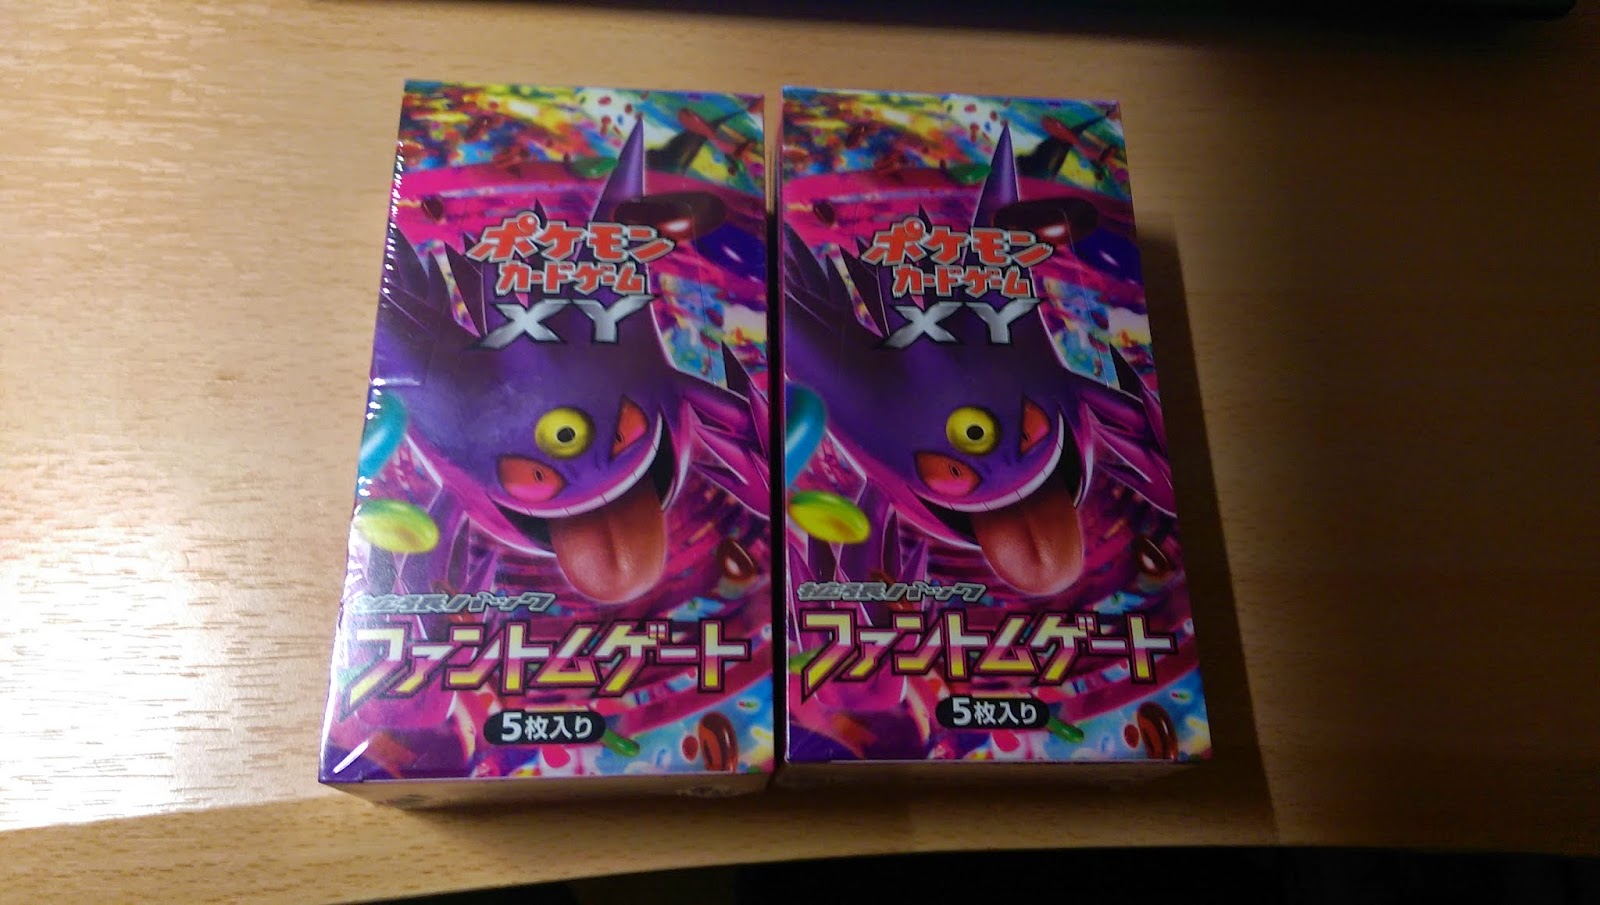 Roller skates tcg - If You Don T Want To Buy Single Packs You Can Of Course Buy Booster Boxes